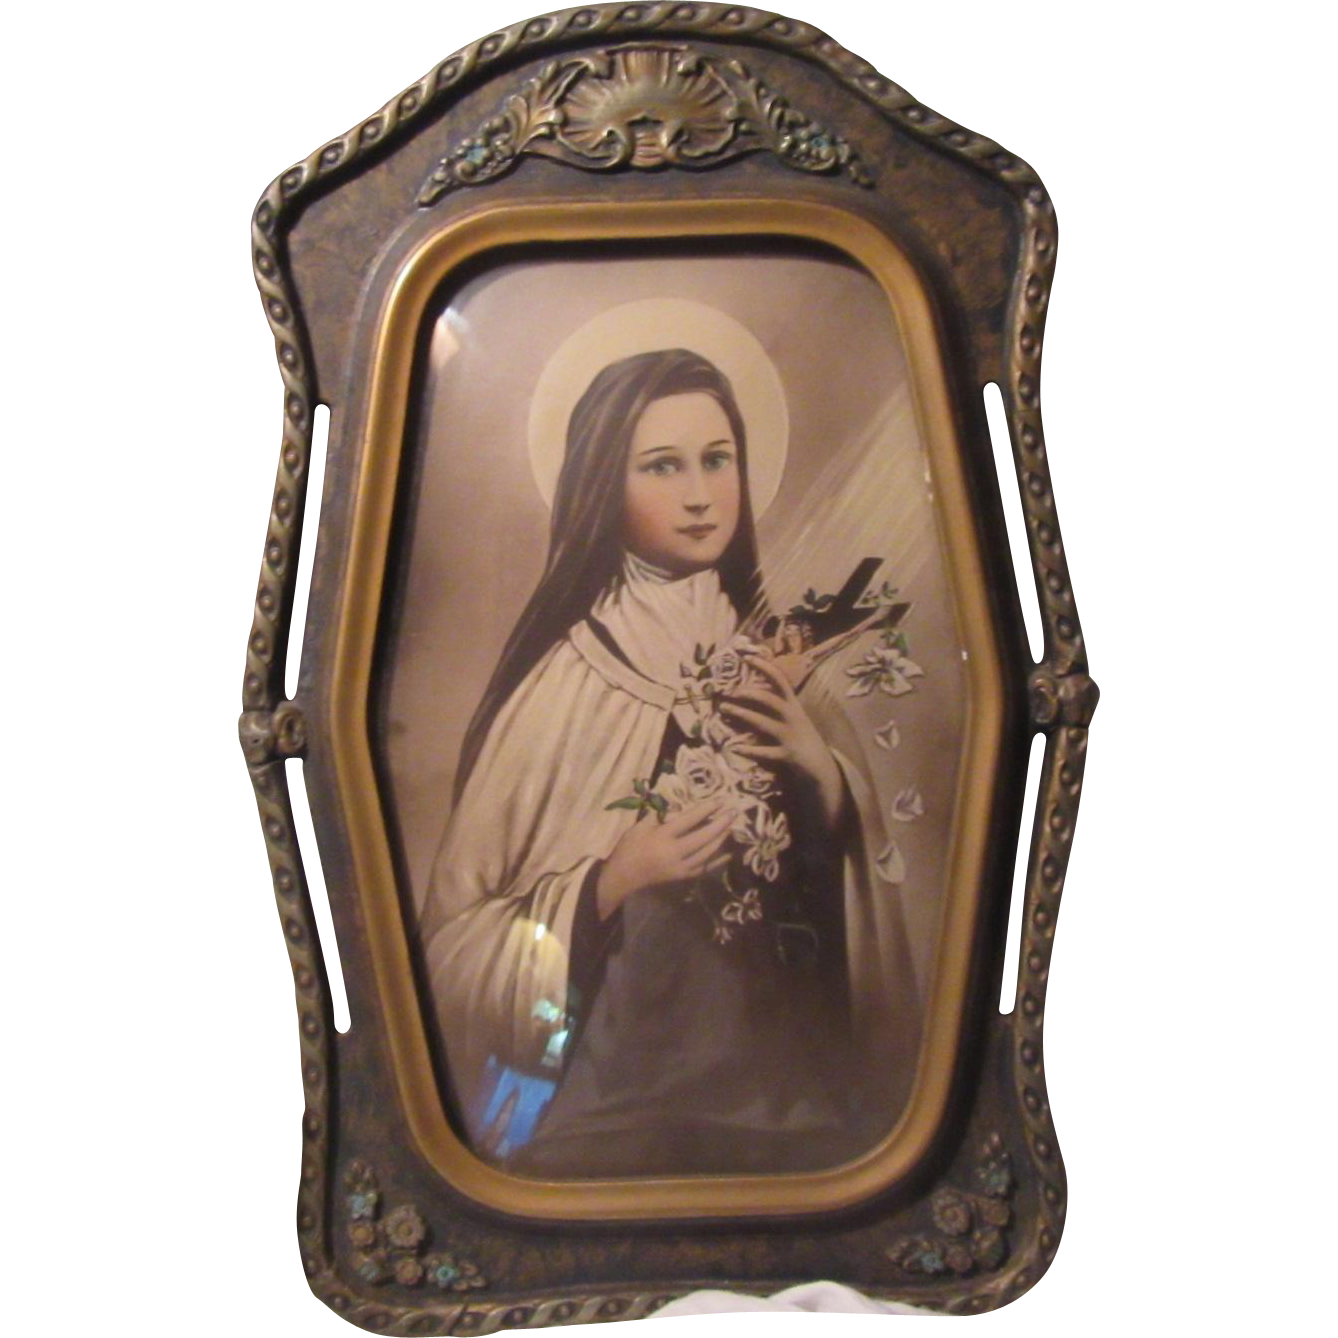 St Therese Theresa of the Little Flower Old Print Fabulous Original Frame Flower Accents Catholic Saing